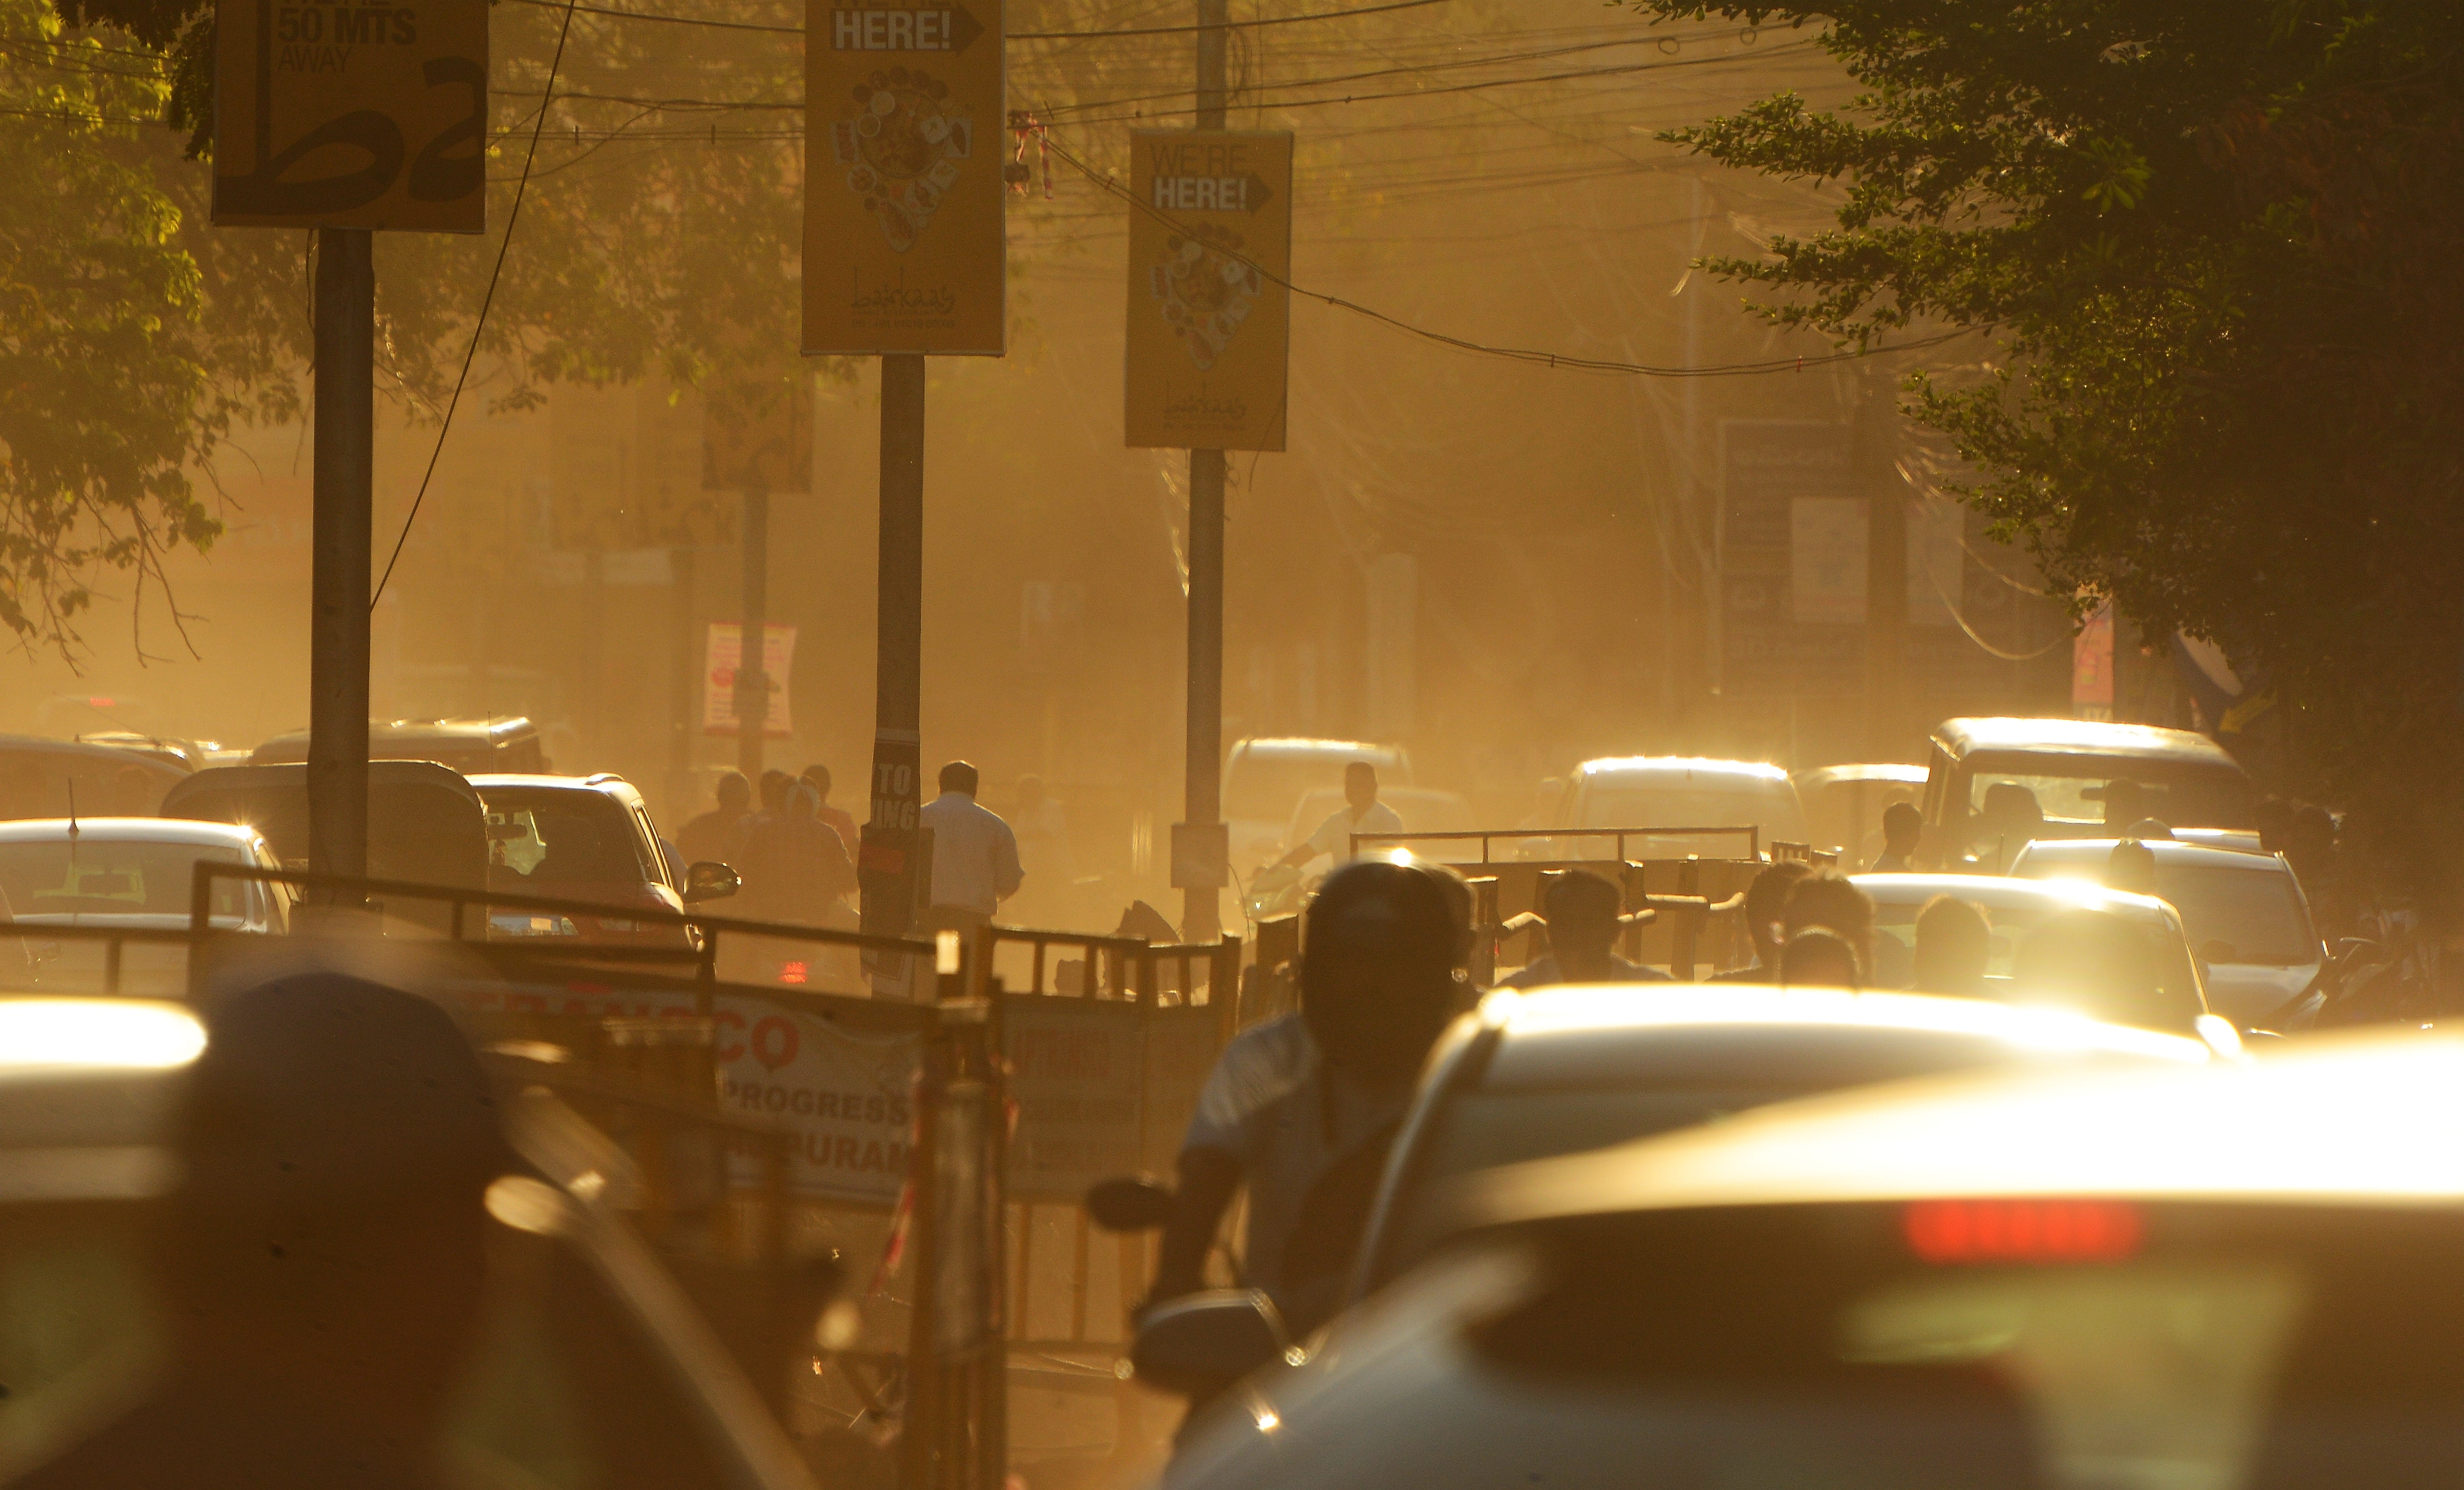 Air Pollution Linked to Hypertension, Heart Diseases: Study